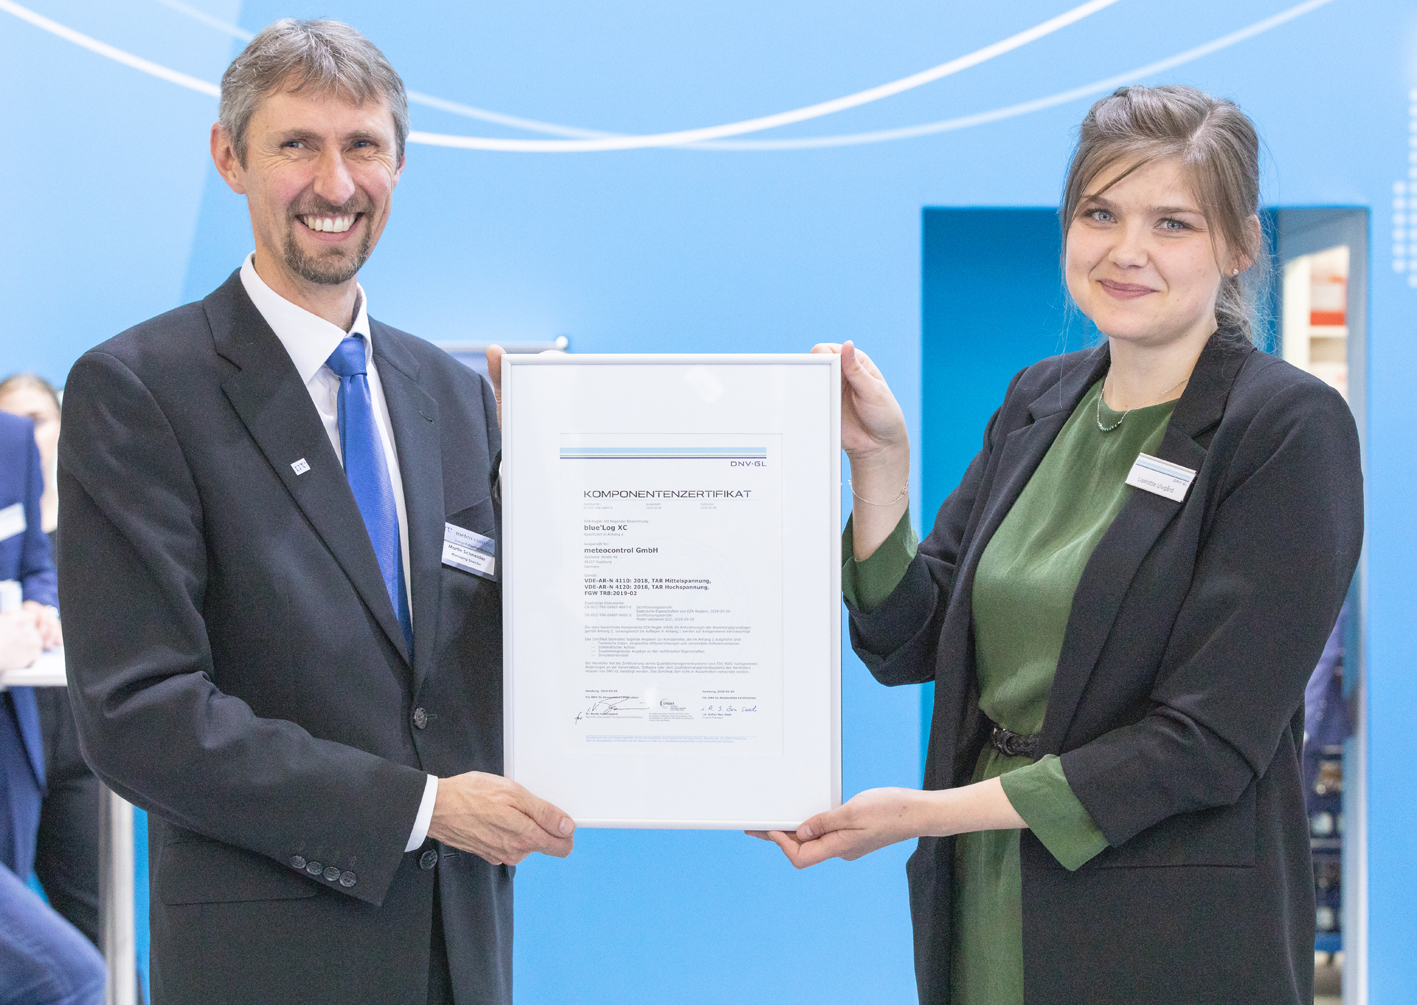 Certified: meteocontrol's Power Plant Controller receives component certification